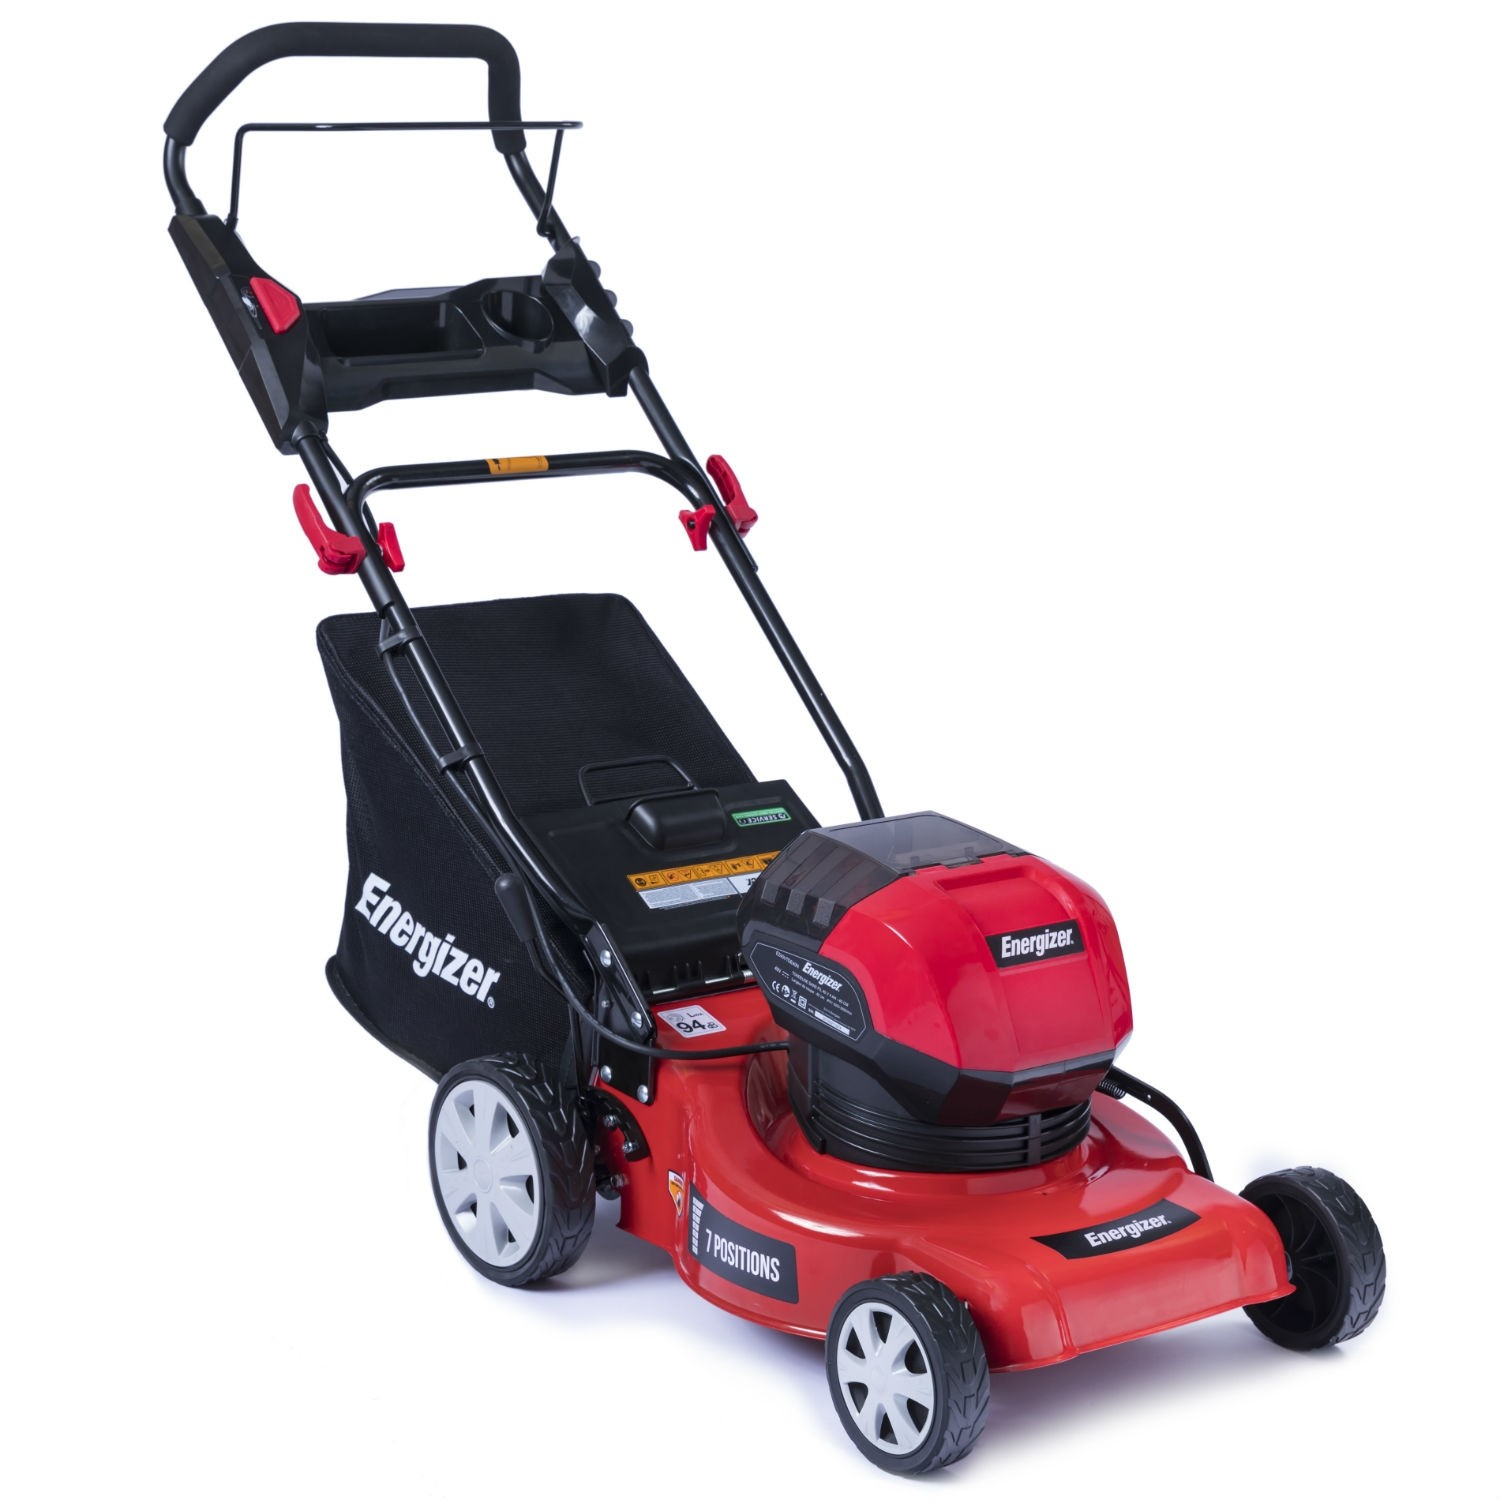 Energizer® EZ40TDE40N 40v 3-in-1 Cordless Lawnmower (with Battery & Charger)